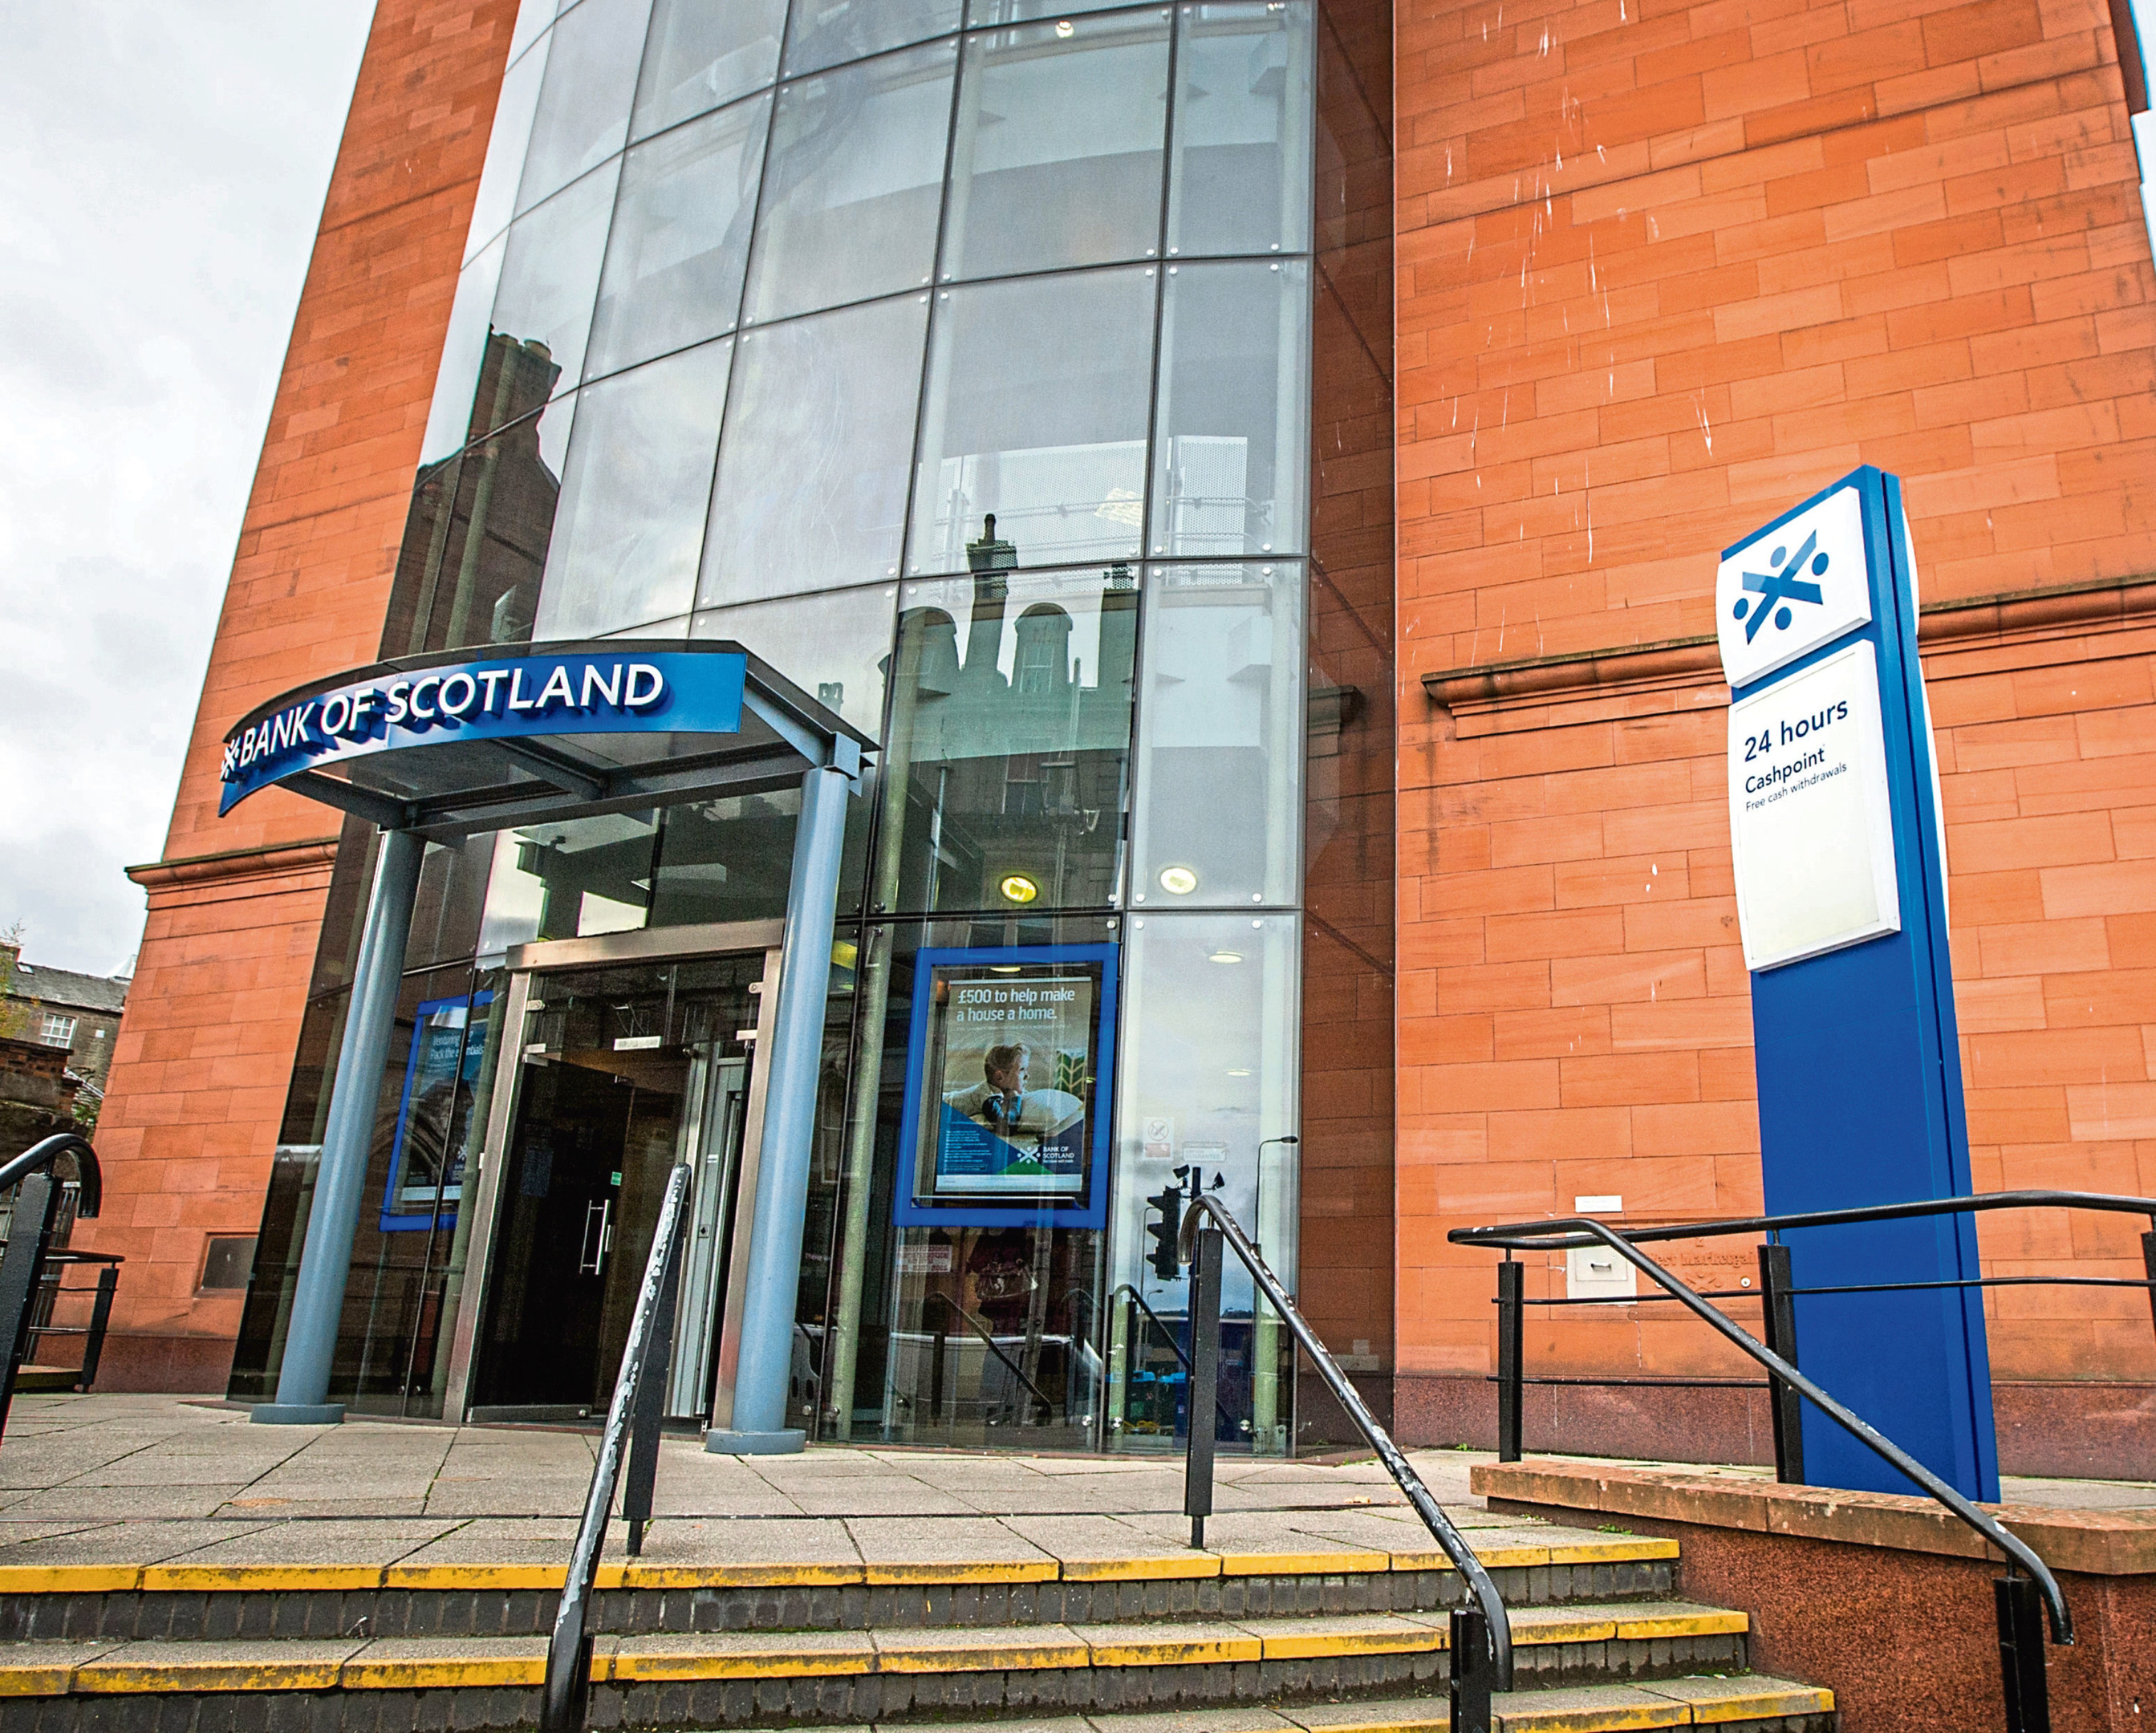 The Bank of Scotland on Marketgait